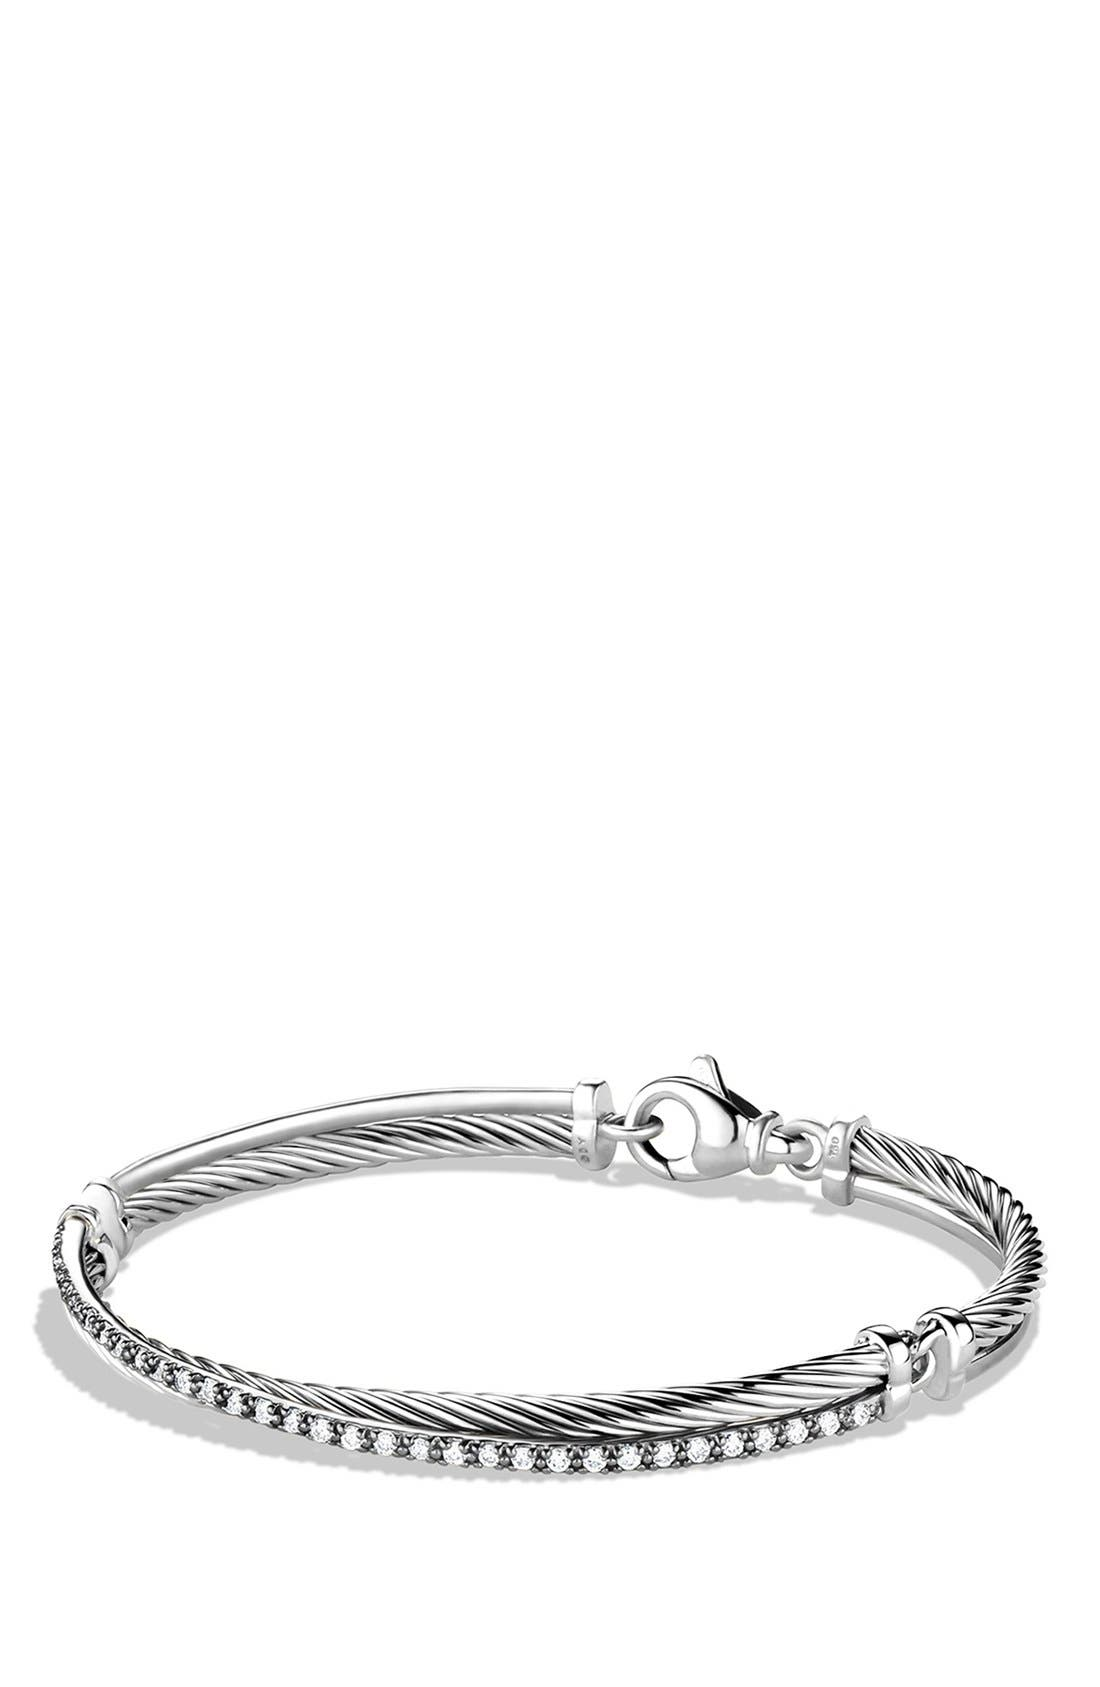 Main Image - David Yurman 'Crossover' Bracelet with Diamonds